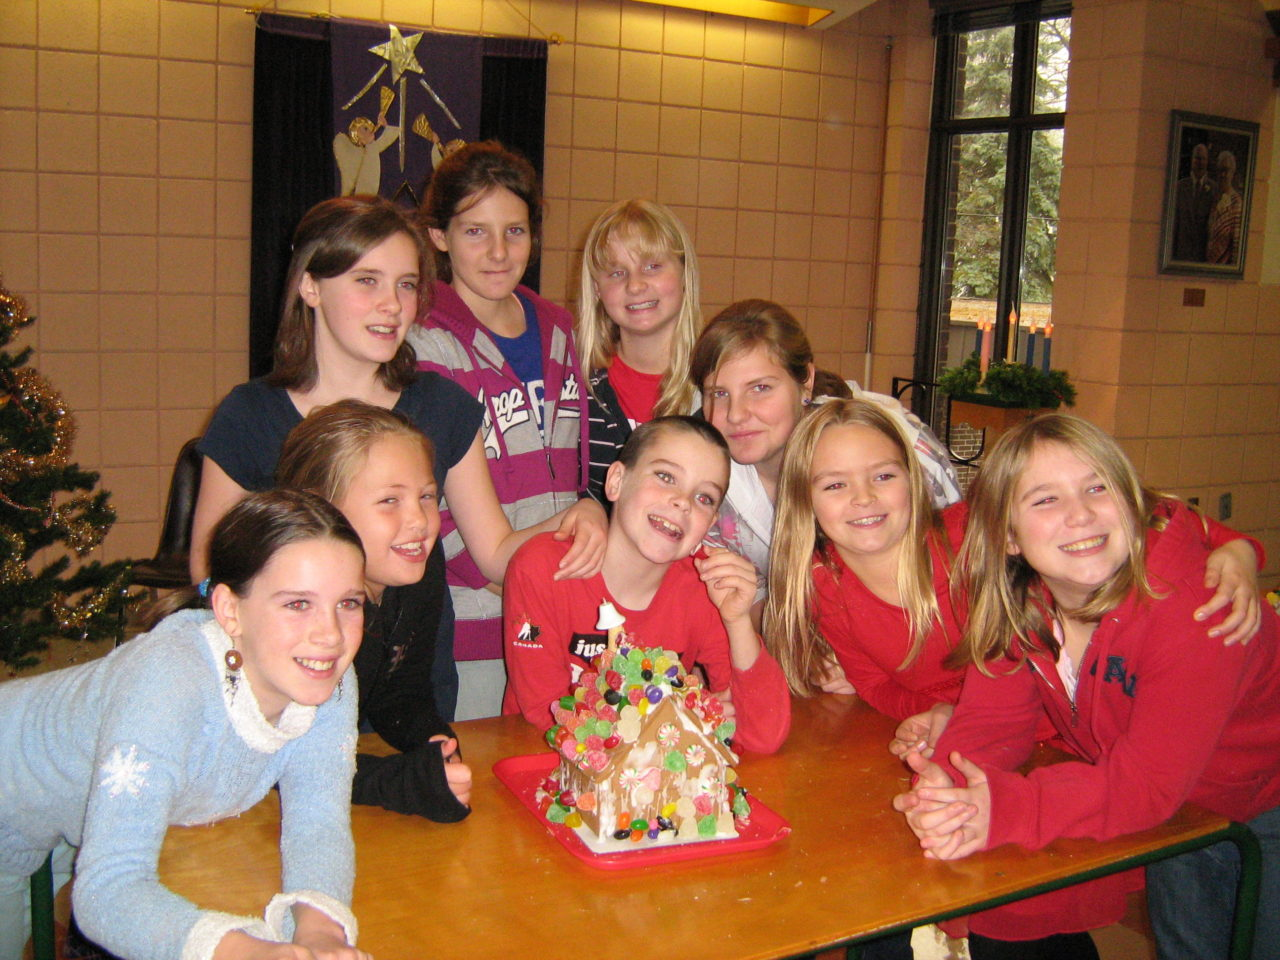 Youth Group from past website